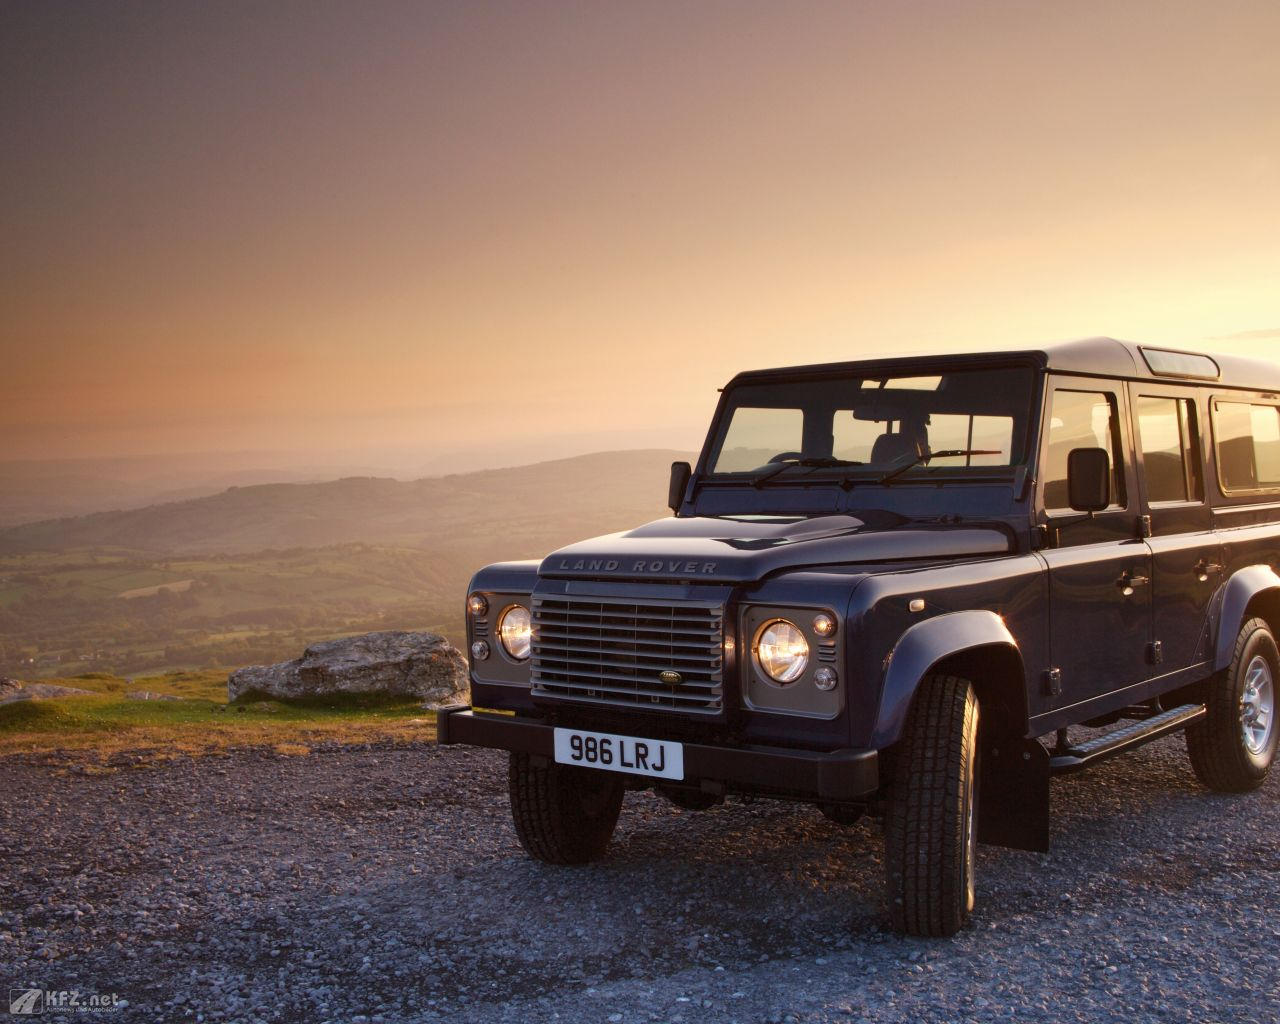 land-rover-defender-1280x1024-13